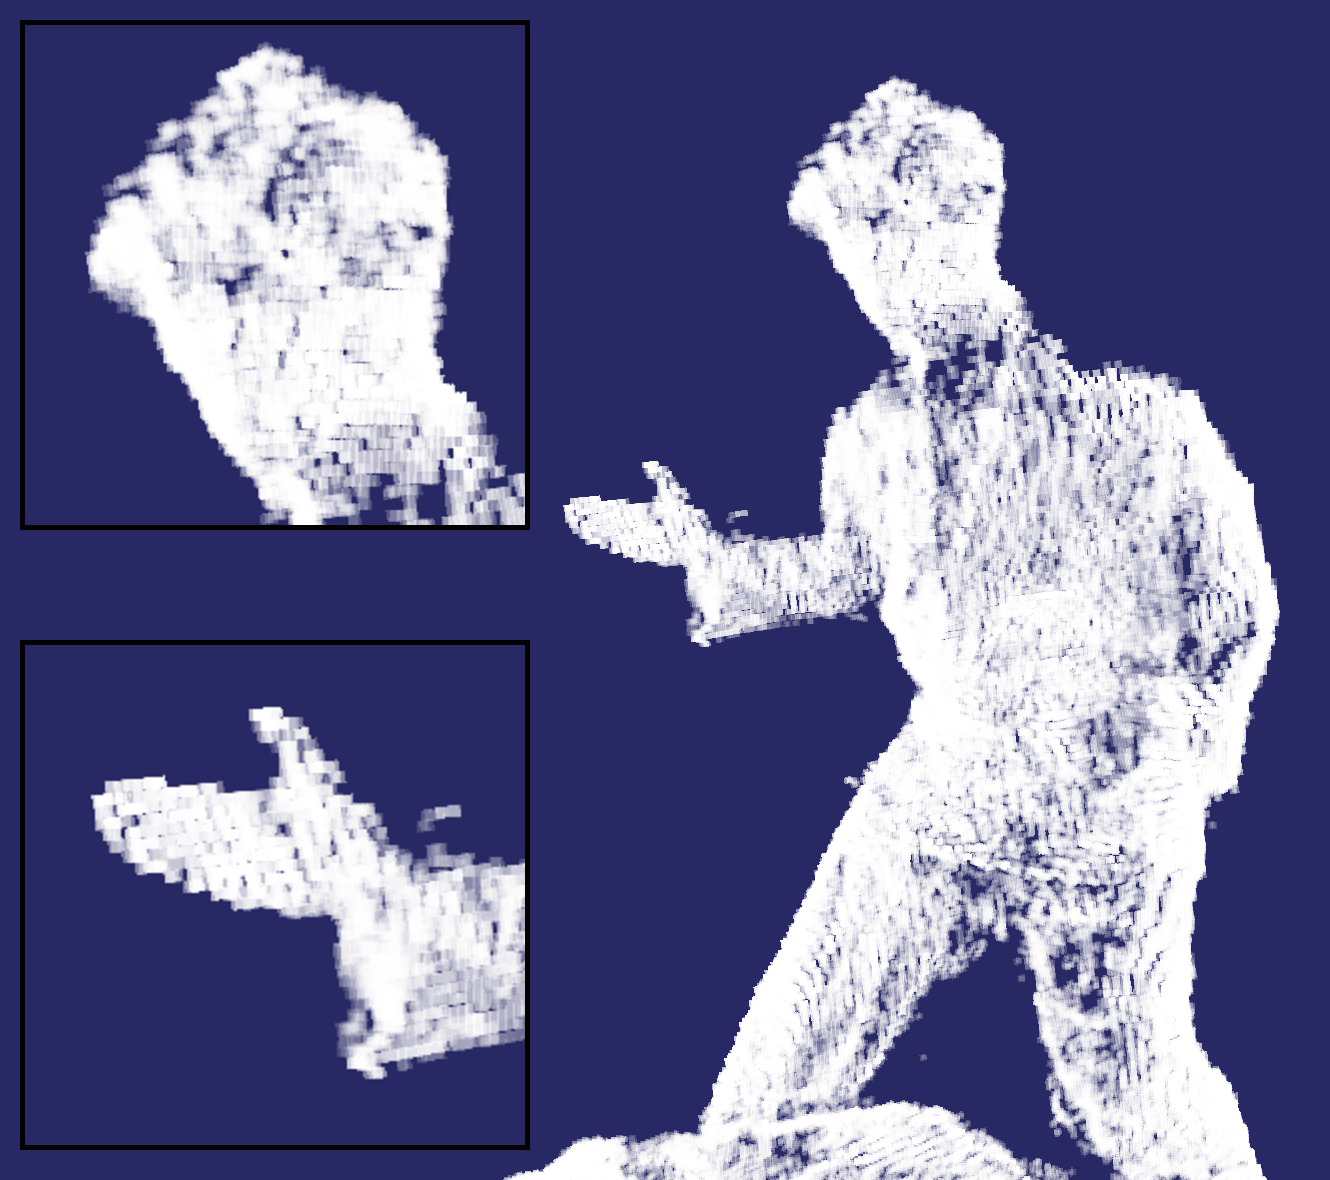 Computer Vision Group - Image-based 3D Reconstruction